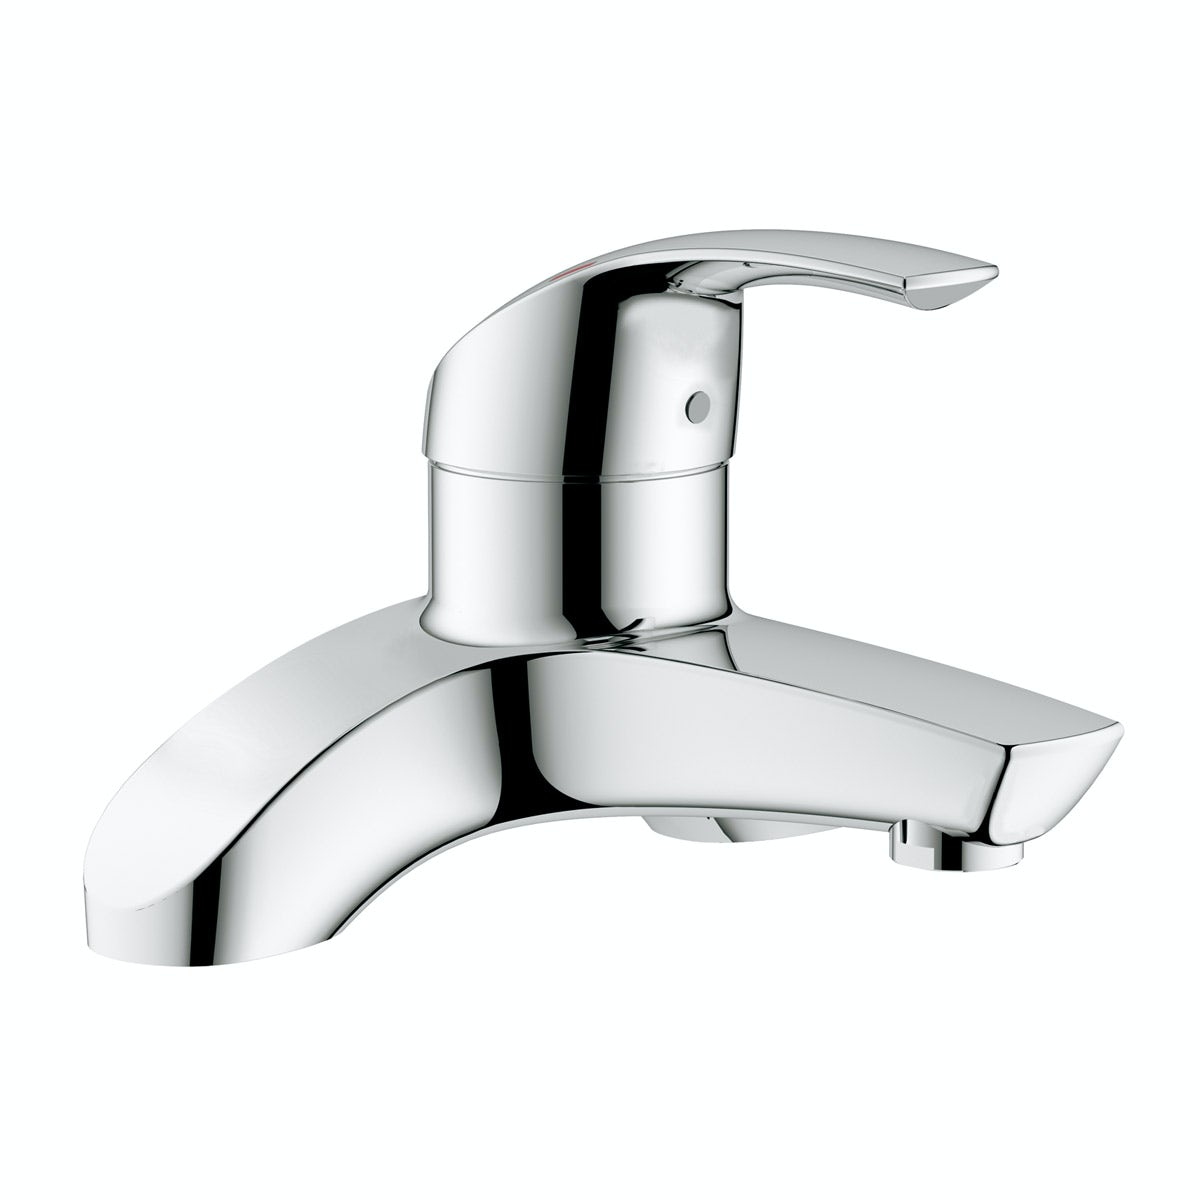 grohe eurosmart bath mixer tap. Black Bedroom Furniture Sets. Home Design Ideas